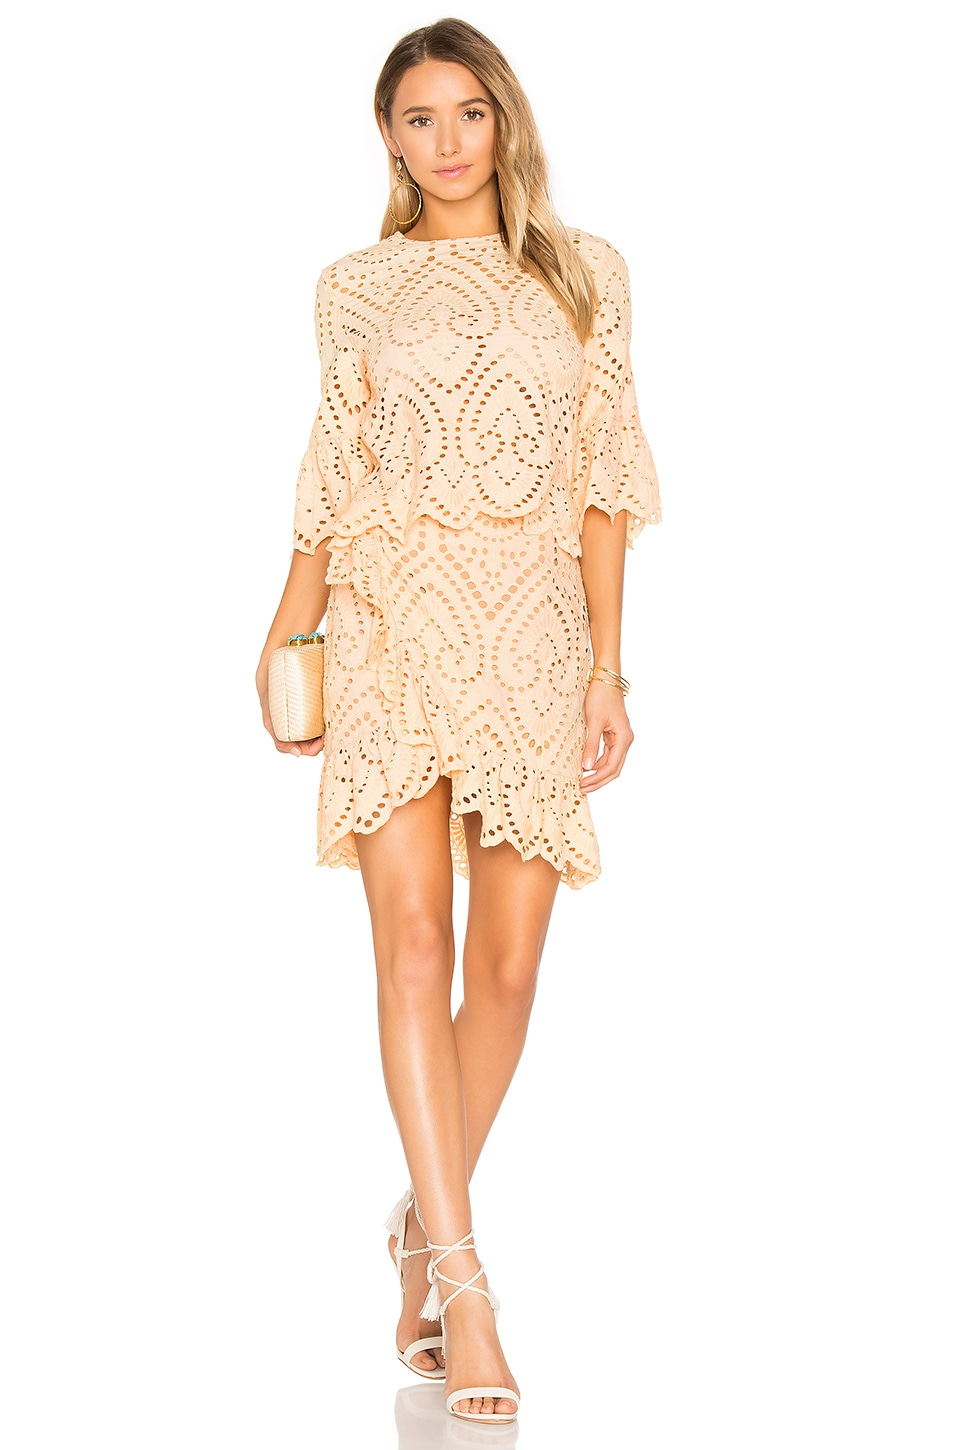 Winona Australia Valerie Wrap Dress in Apricot